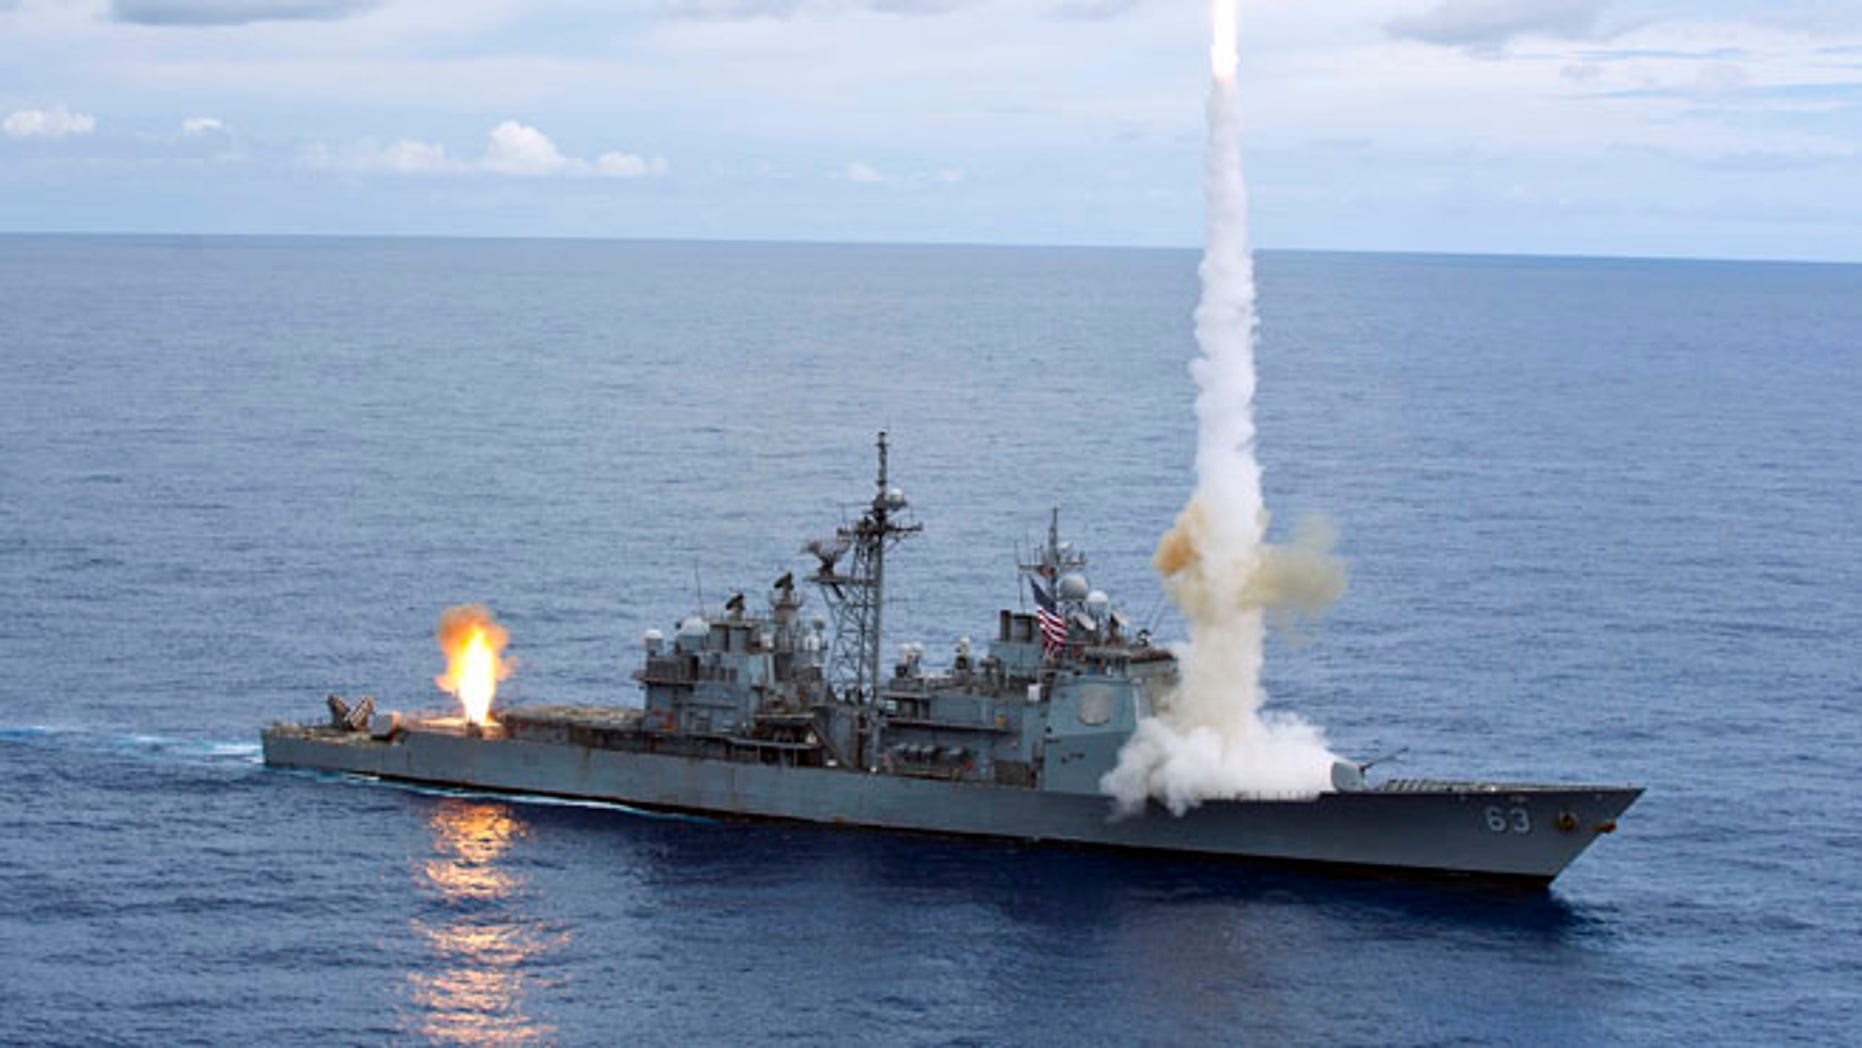 Handout photo taken September 20, 2012 and released to Reuters on September 25, 2012 of the Ticonderoga-class guided-missile cruiser USS Cowpens (CG 63) in the Pacific Ocean.